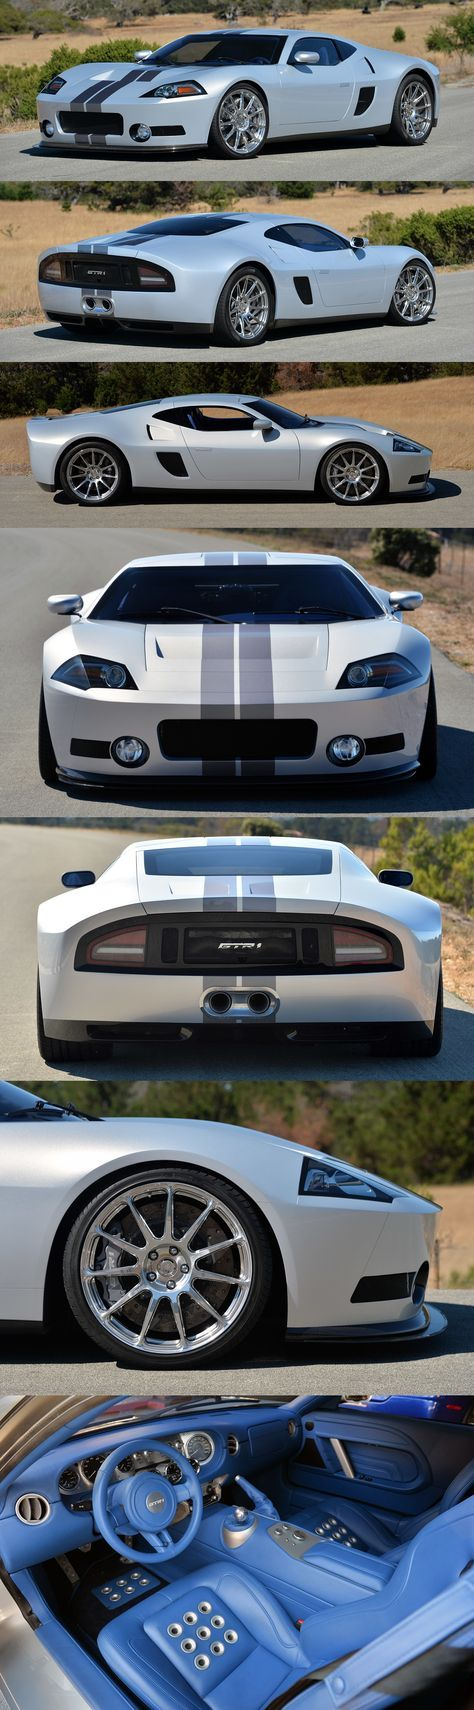 GALPIN FORD GTR1 $1,024,000: The guys at Galpin Auto Sports went and made the Ford GT into a truly-modern super car, the Galpin Ford GTR1. Based on the GT's original chassis, the 1024-HP GTR1 has been completely reworked.